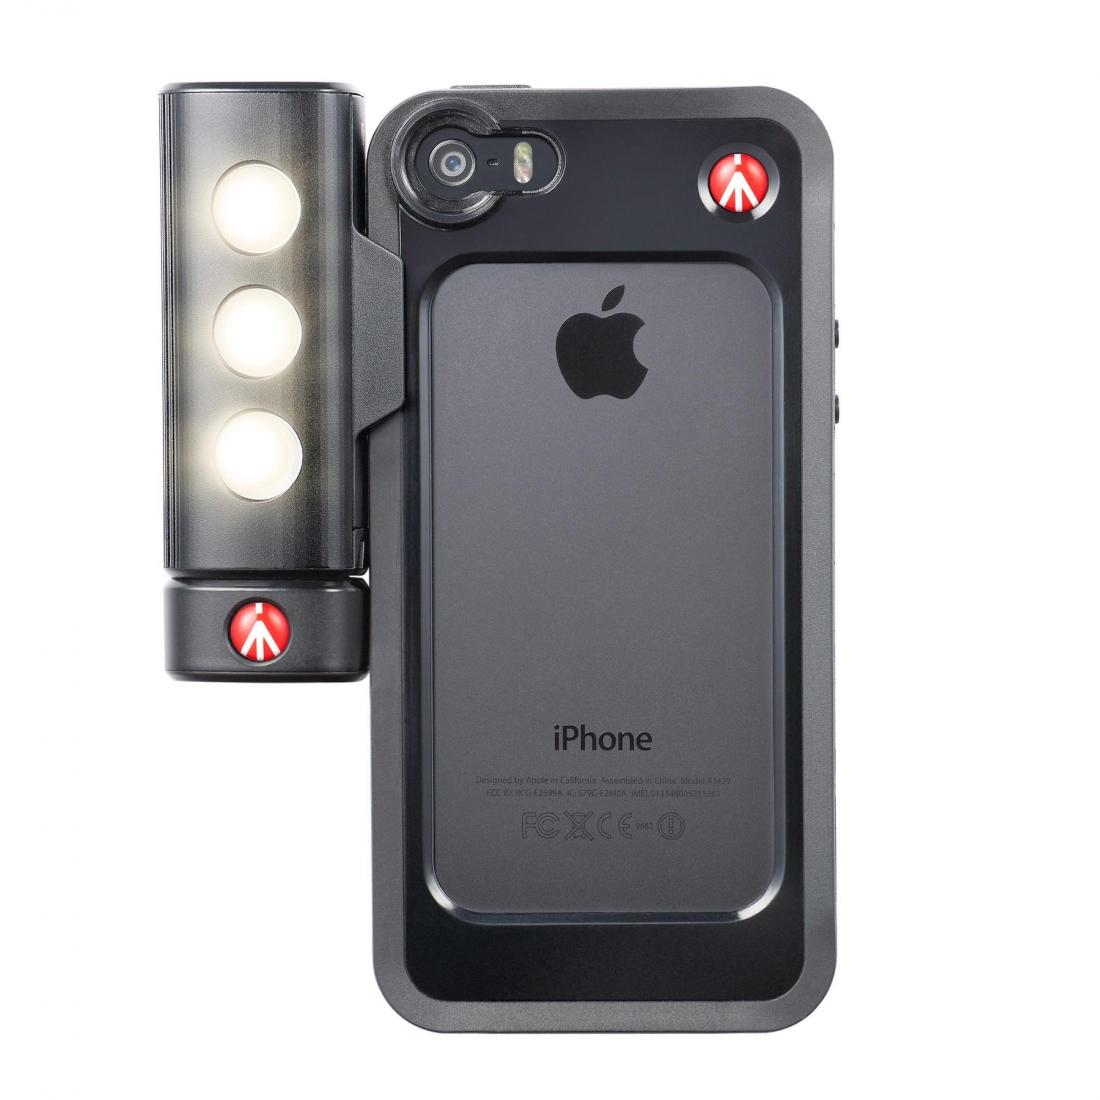 Luce Led Dannosa.Manfrotto Mklklyp5s Kit Per Iphone 5 5s Con Luce Led E Bumper Nero